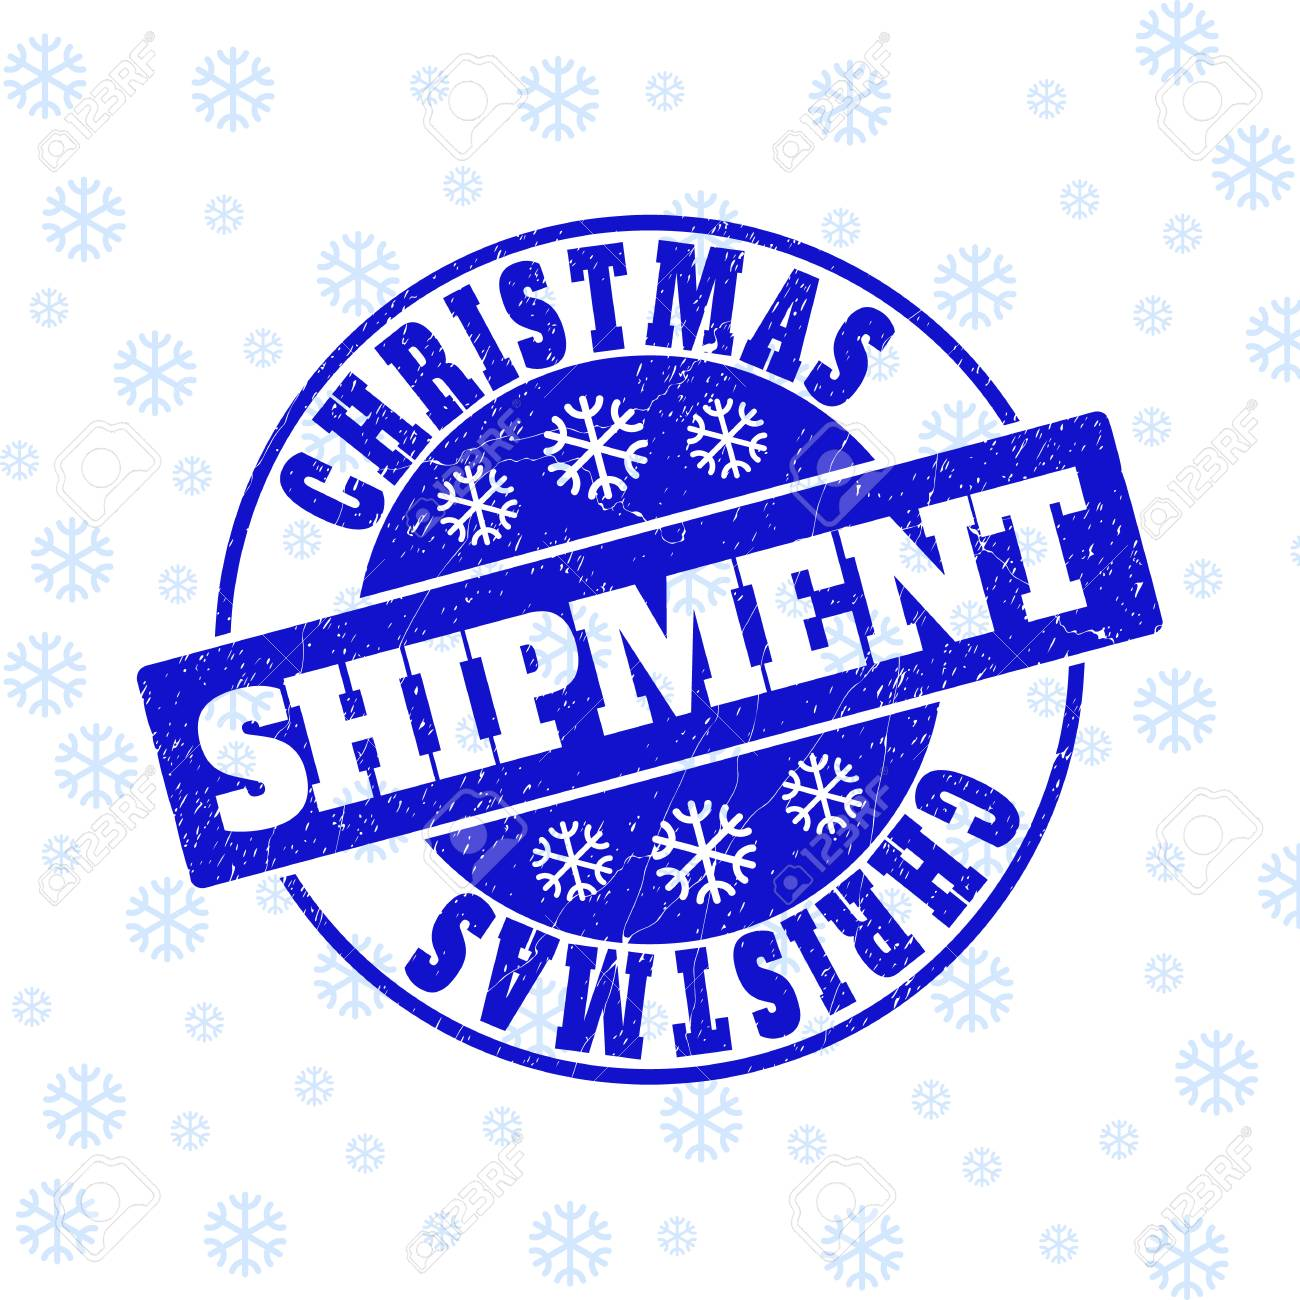 Christmas Shipment Round Stamp Seal On Winter Background With.. Royalty Free Cliparts, Vectors, And Stock Illustration. Image 126796190.